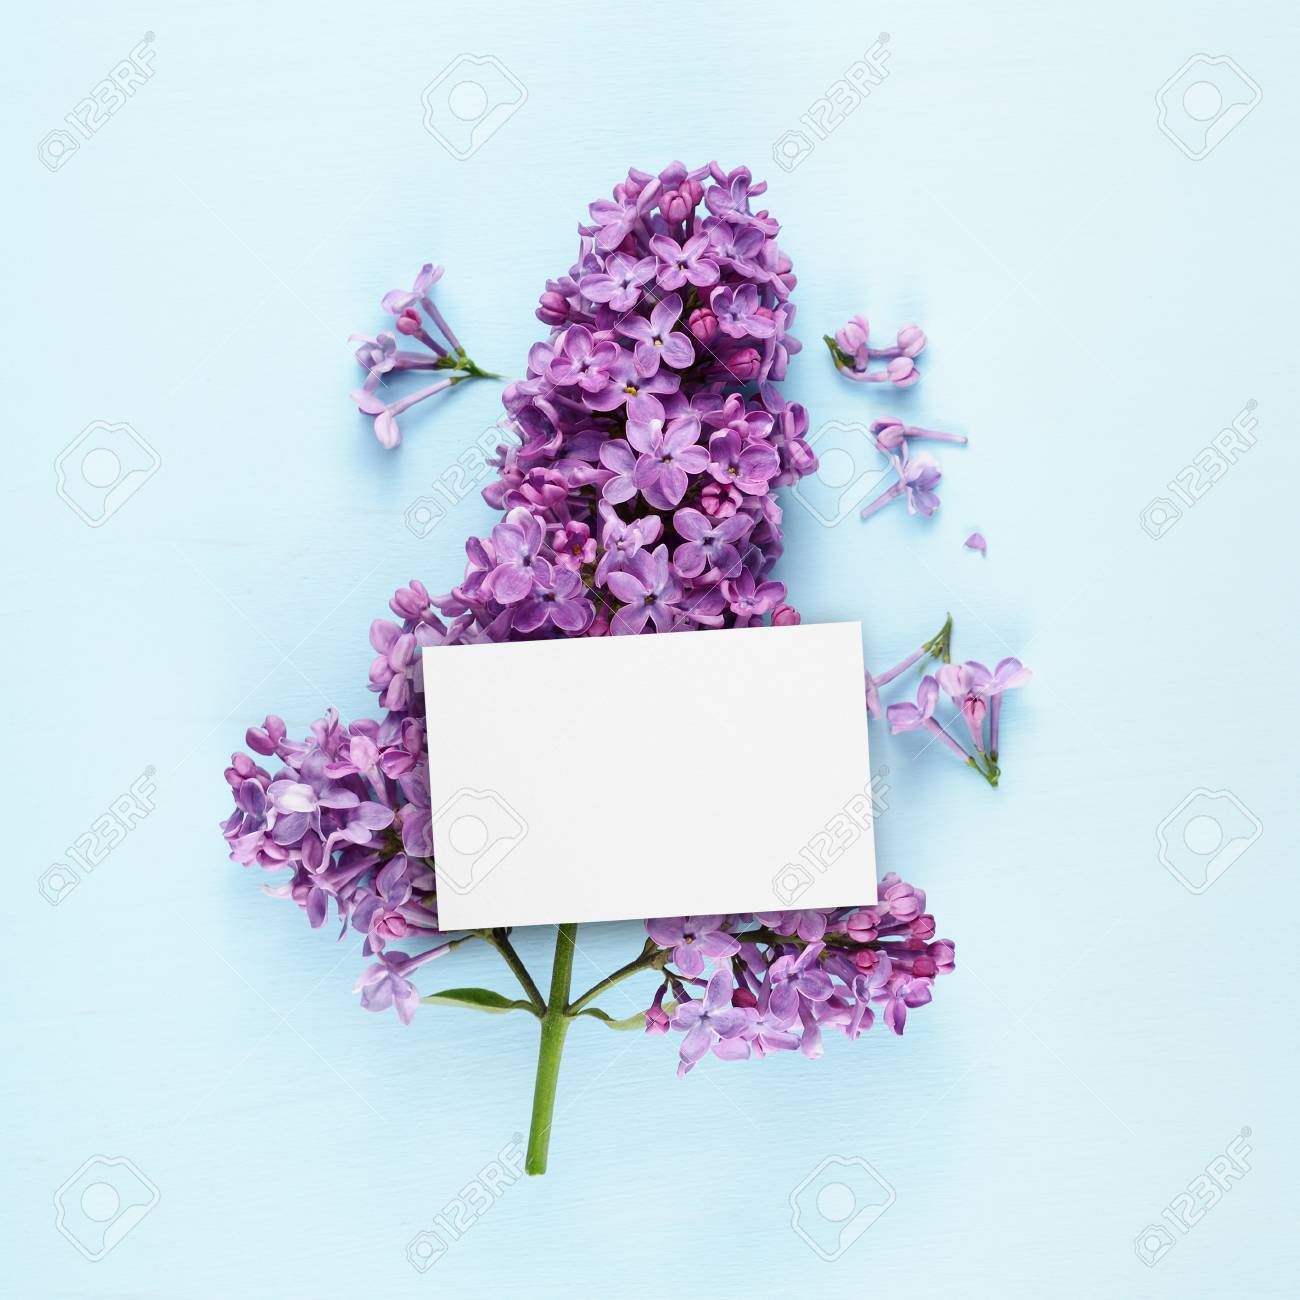 Birthday card and lilac flowers on blue background stock photo birthday card and lilac flowers on blue background stock photo 89582131 izmirmasajfo